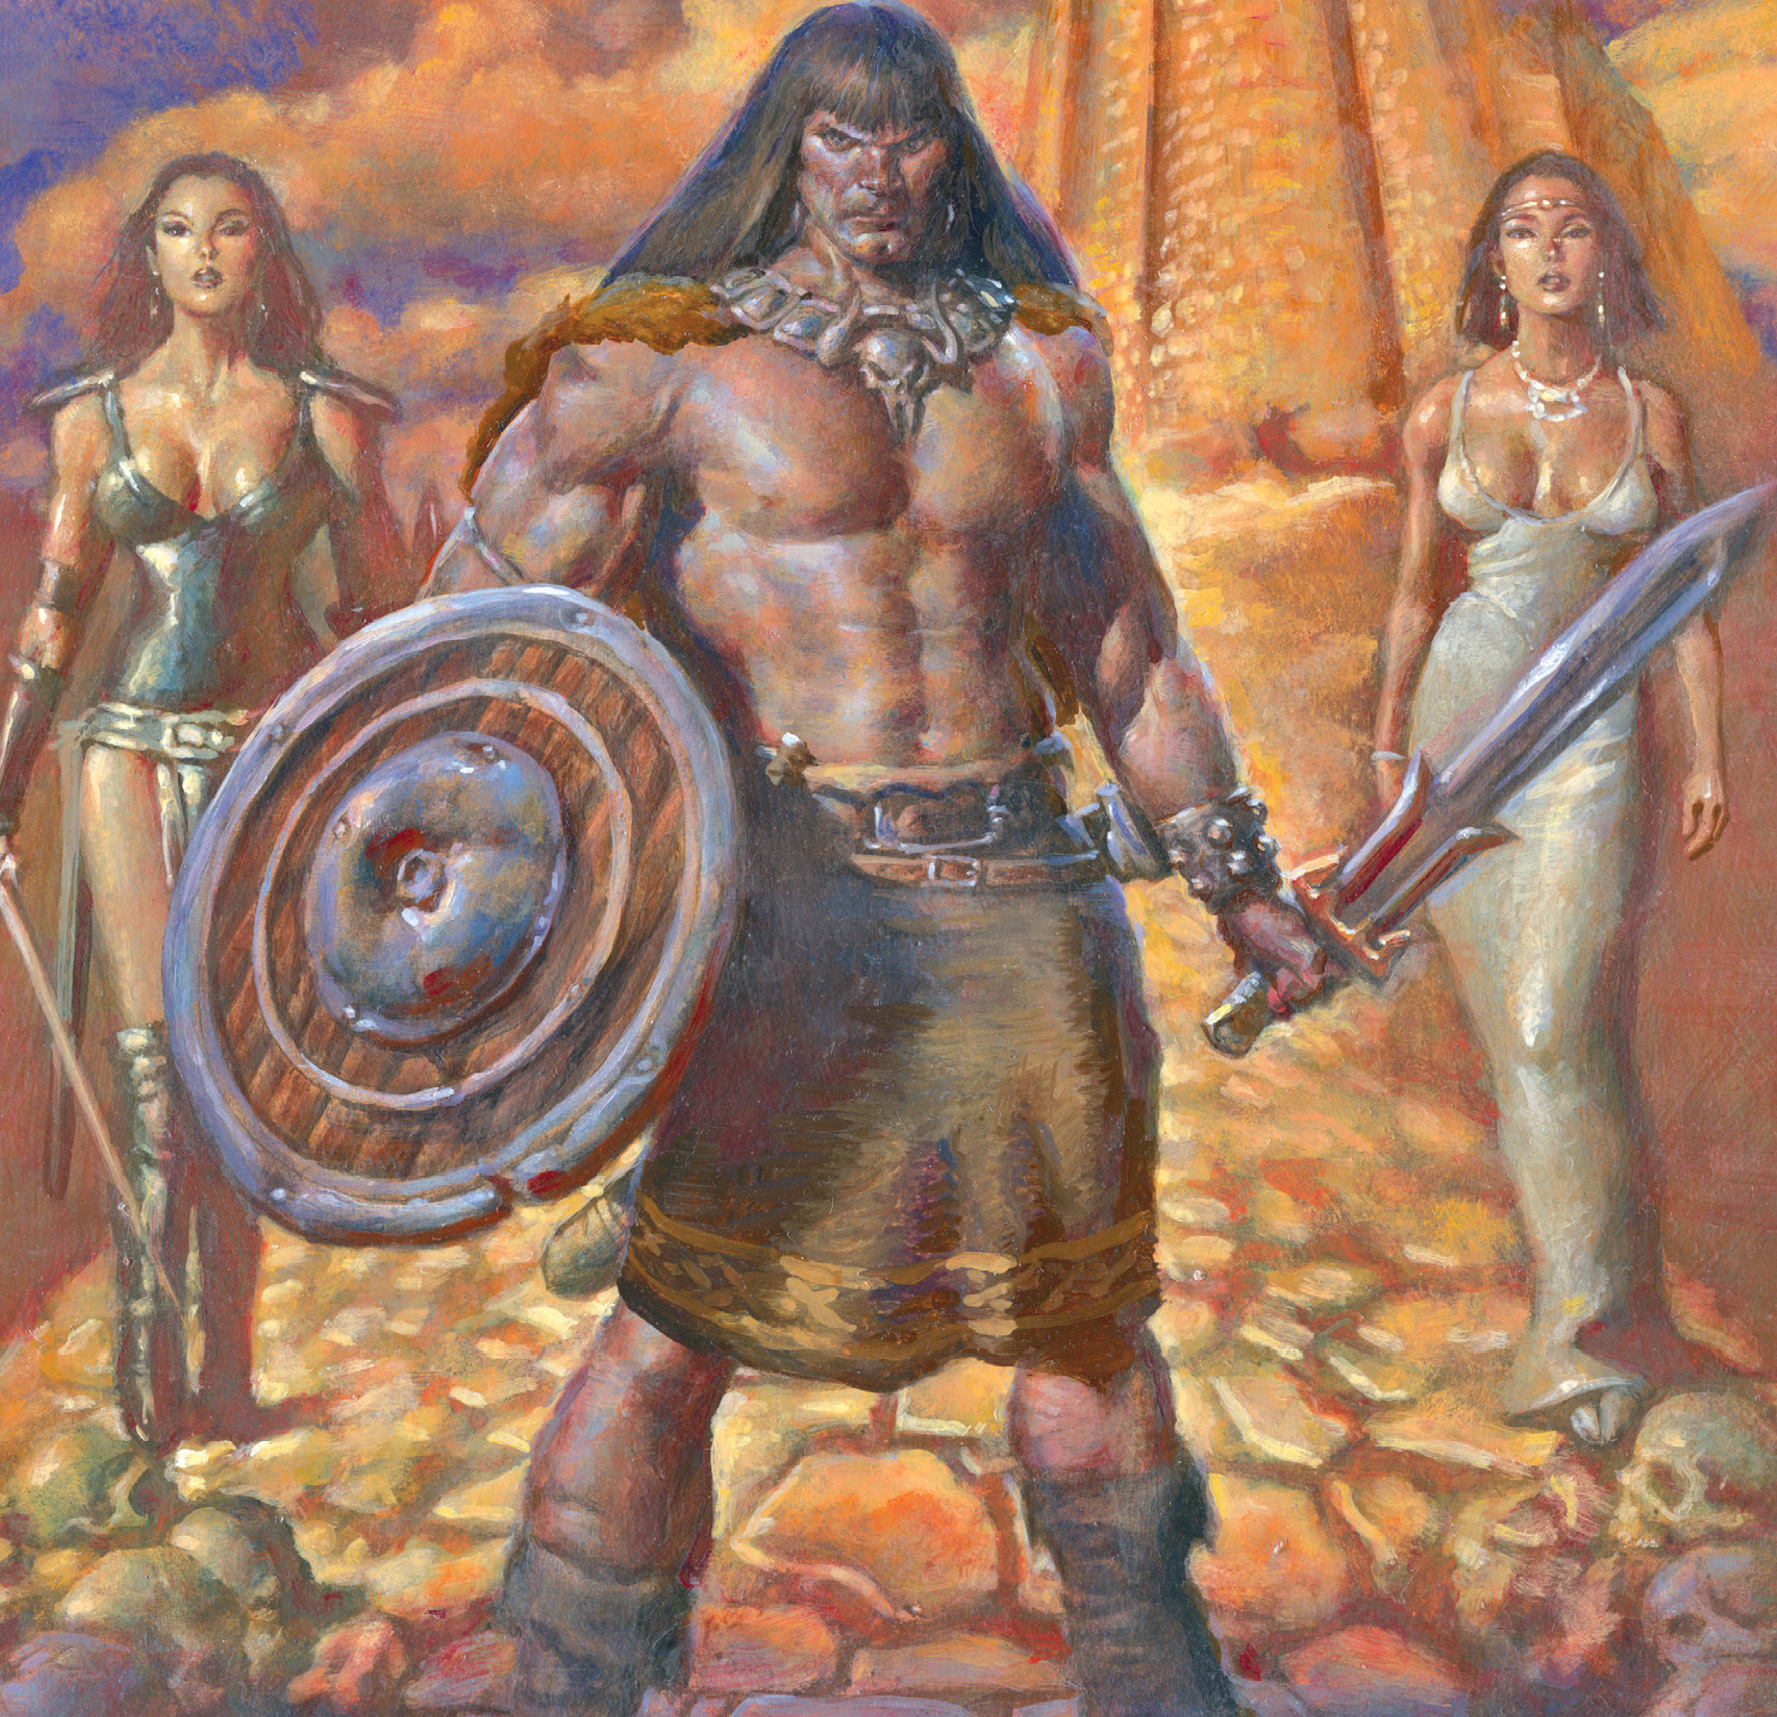 'Conan: The Jewels of Gwahlur and Other Stories' review